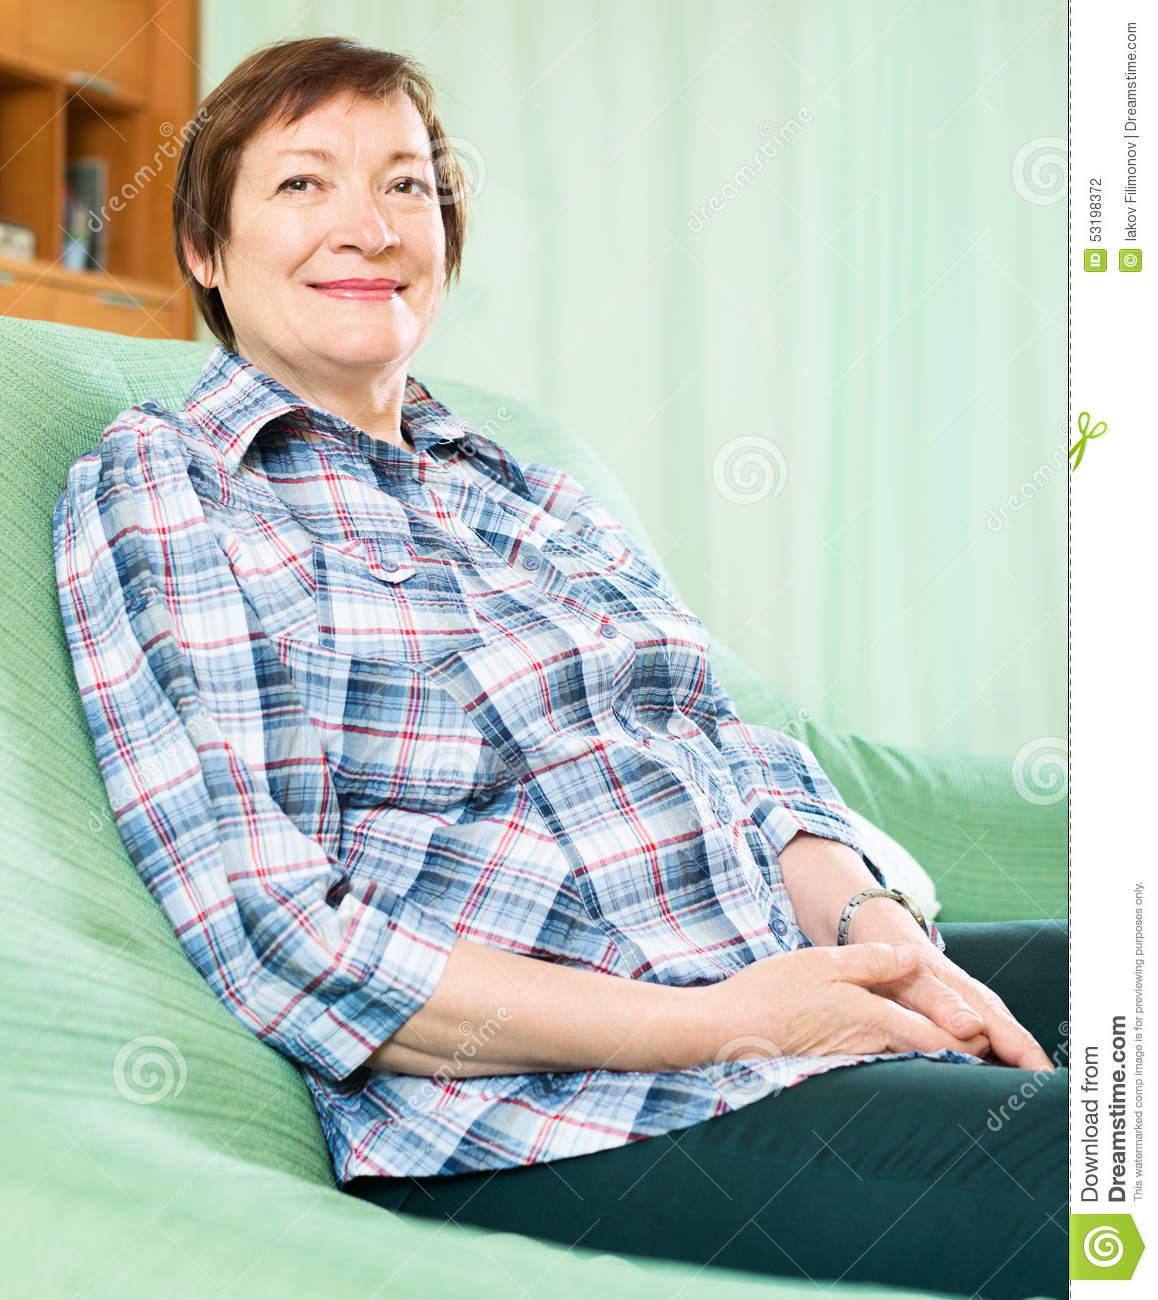 Happy Elderly Woman In Casual Clothes Sitting On Sofa Stock Photo Image 53198372